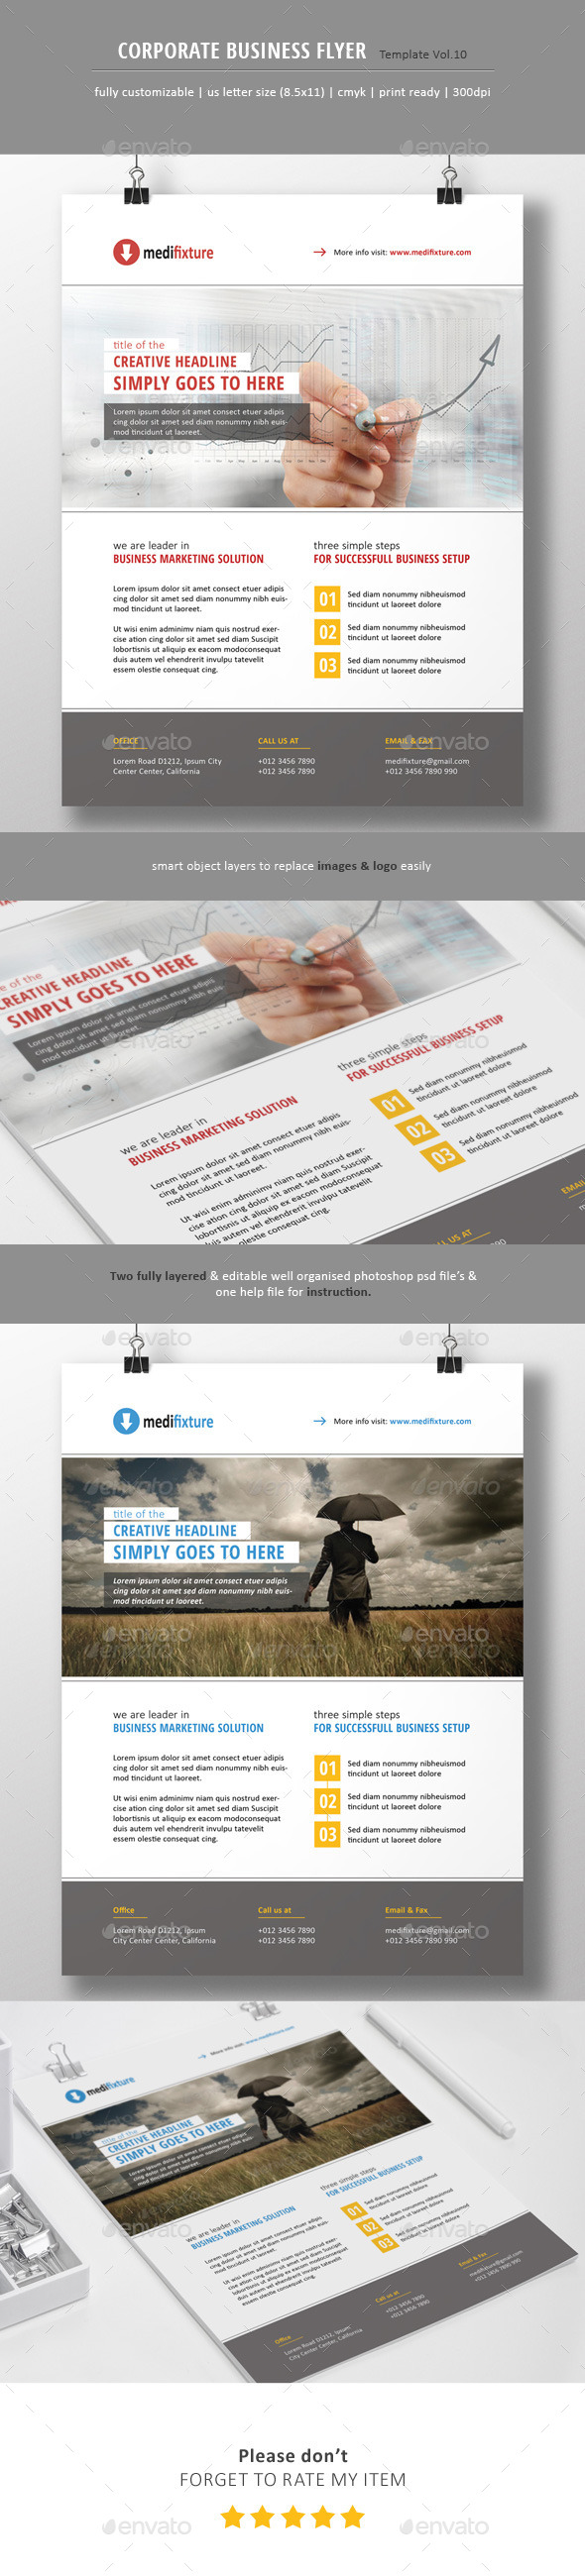 GraphicRiver Corporate Business Flyer Vol.10 10914496